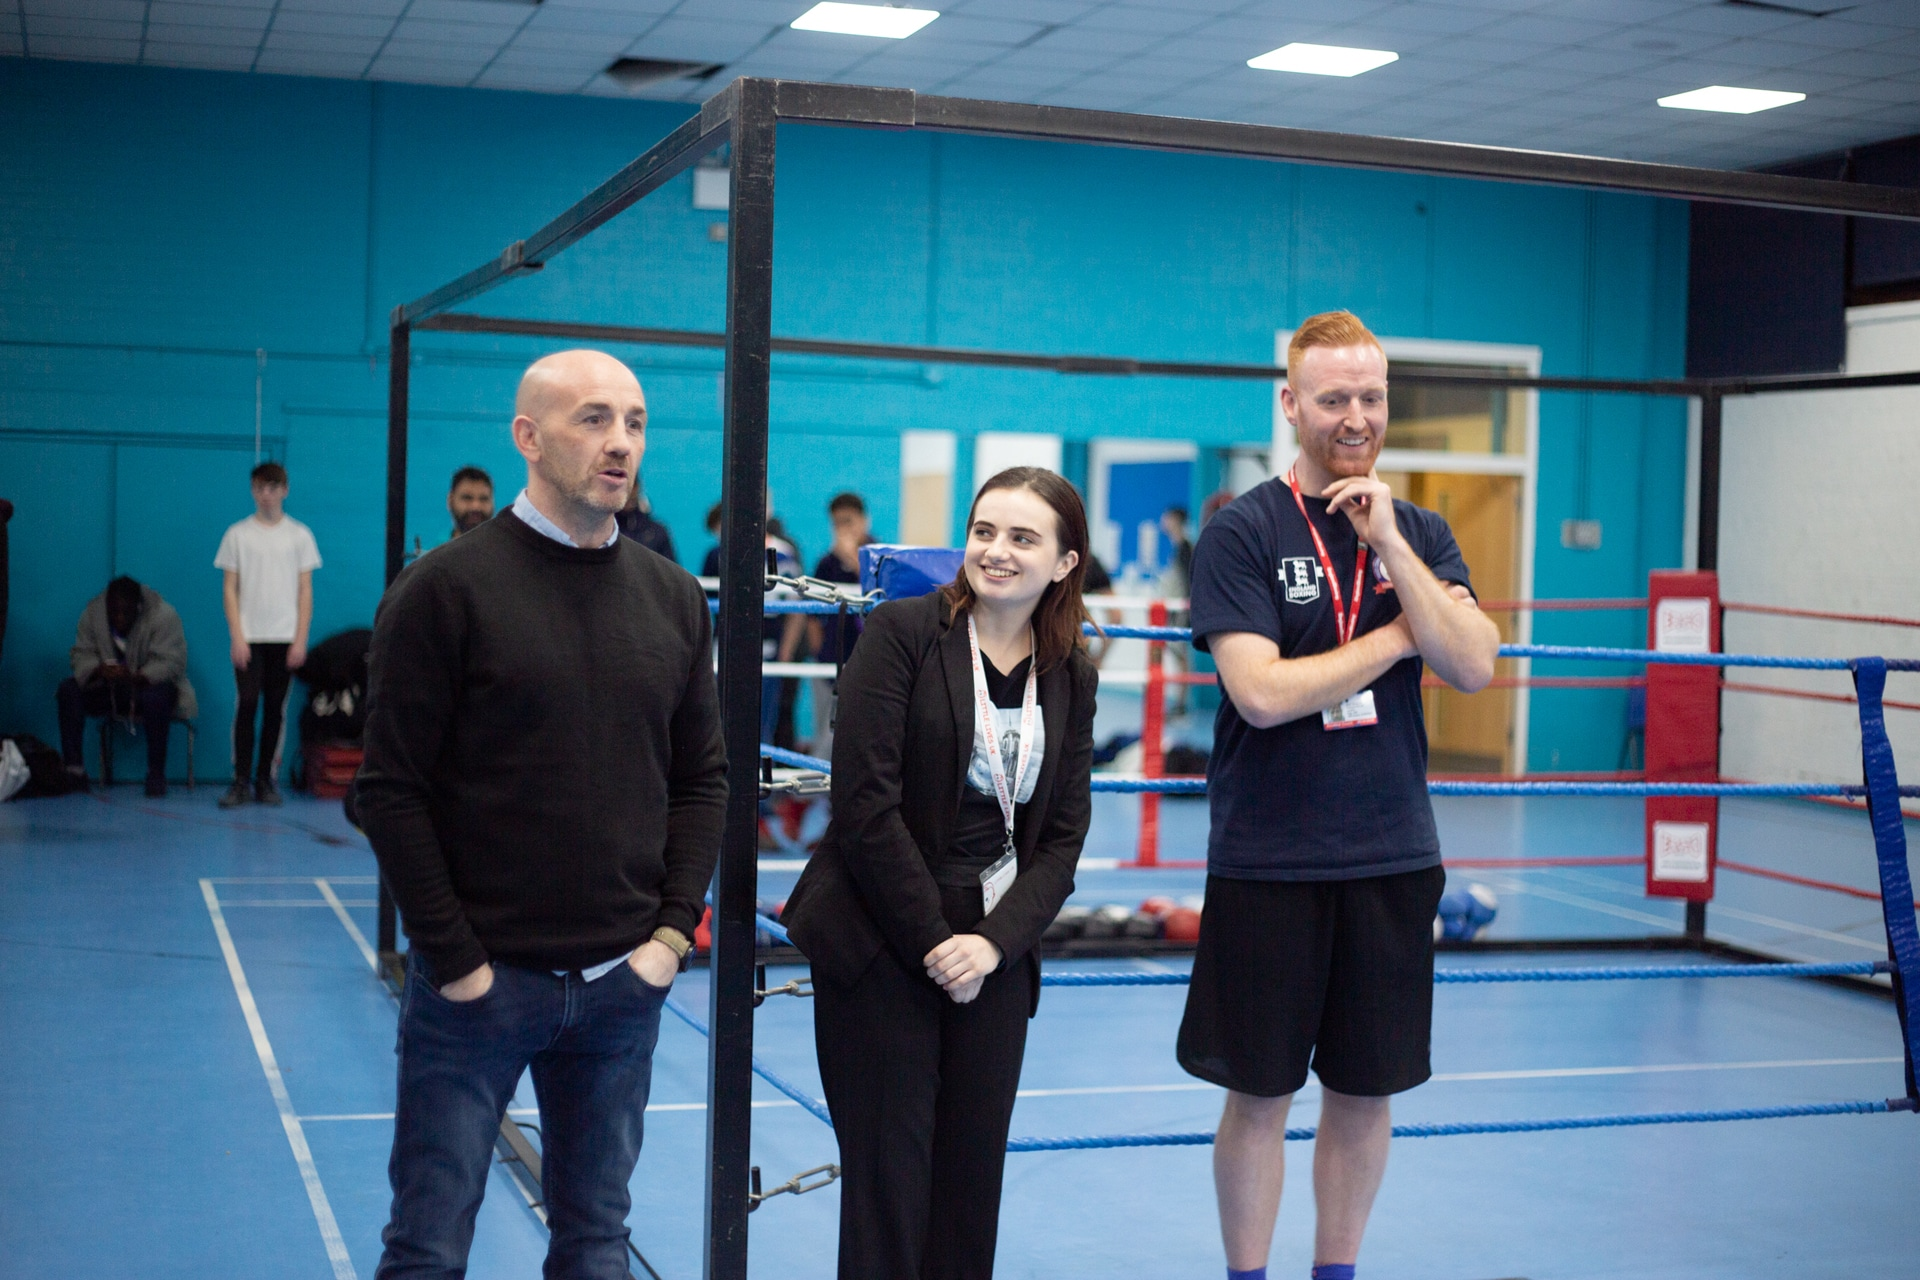 Feltham Police and Community Boxing Club